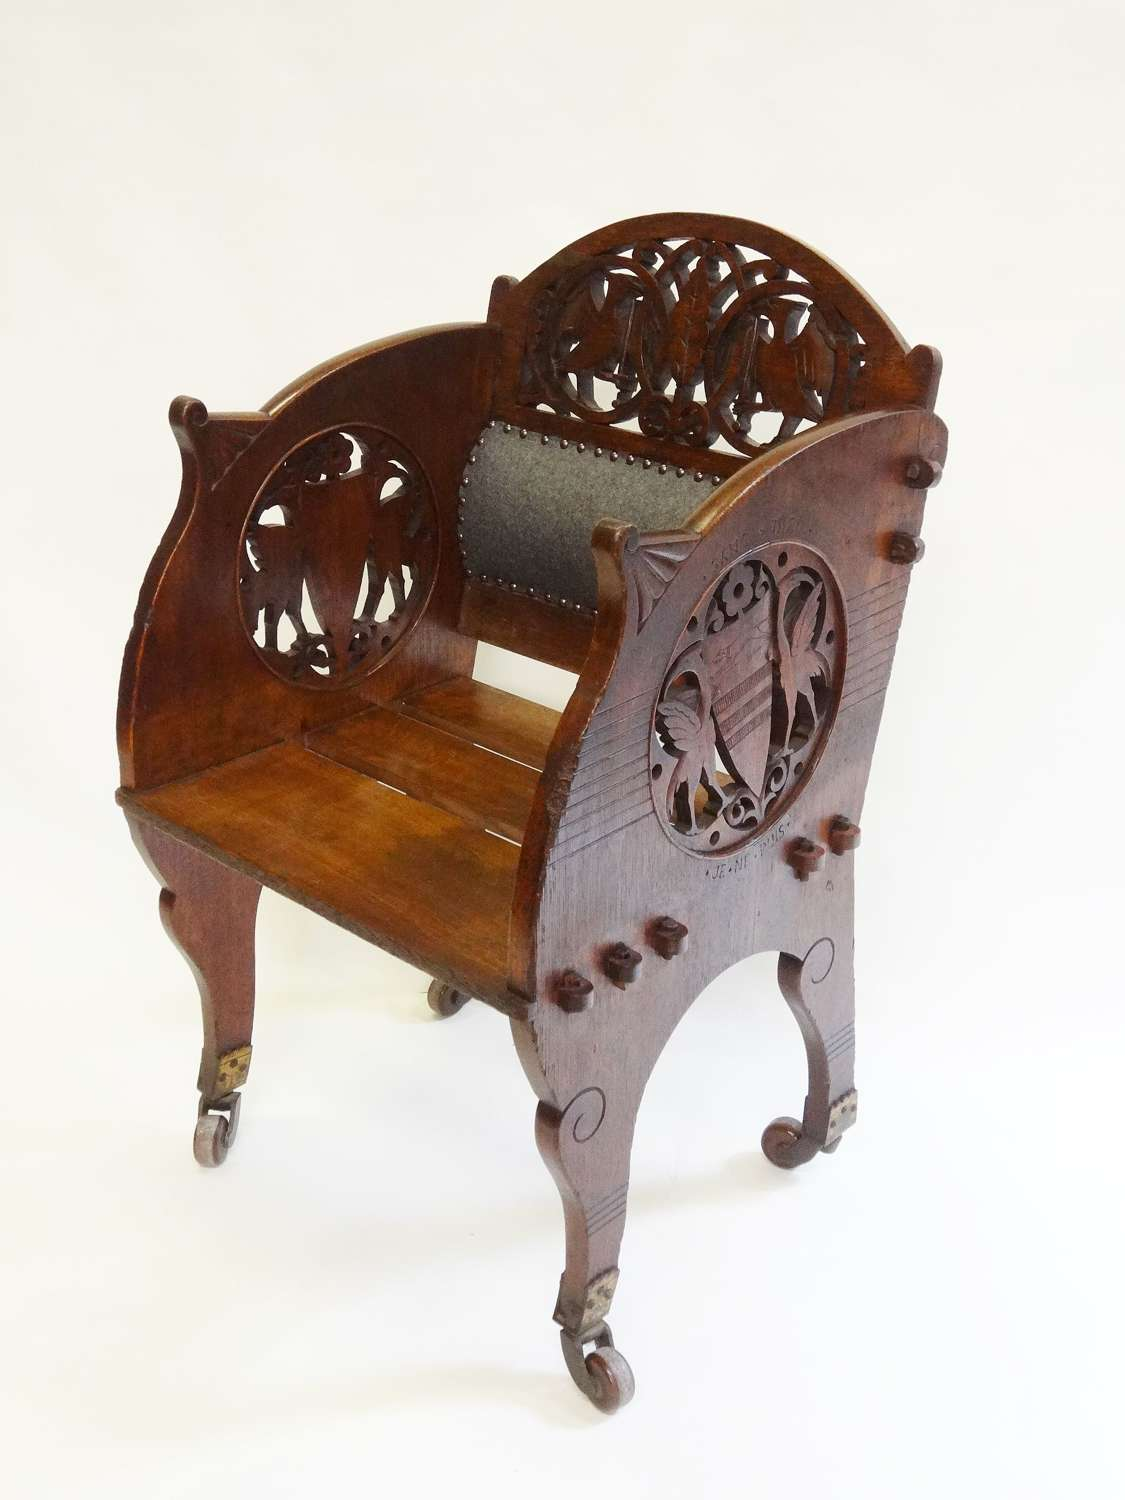 Rare Art Furniture carved oak armchair by Walford & Donkin